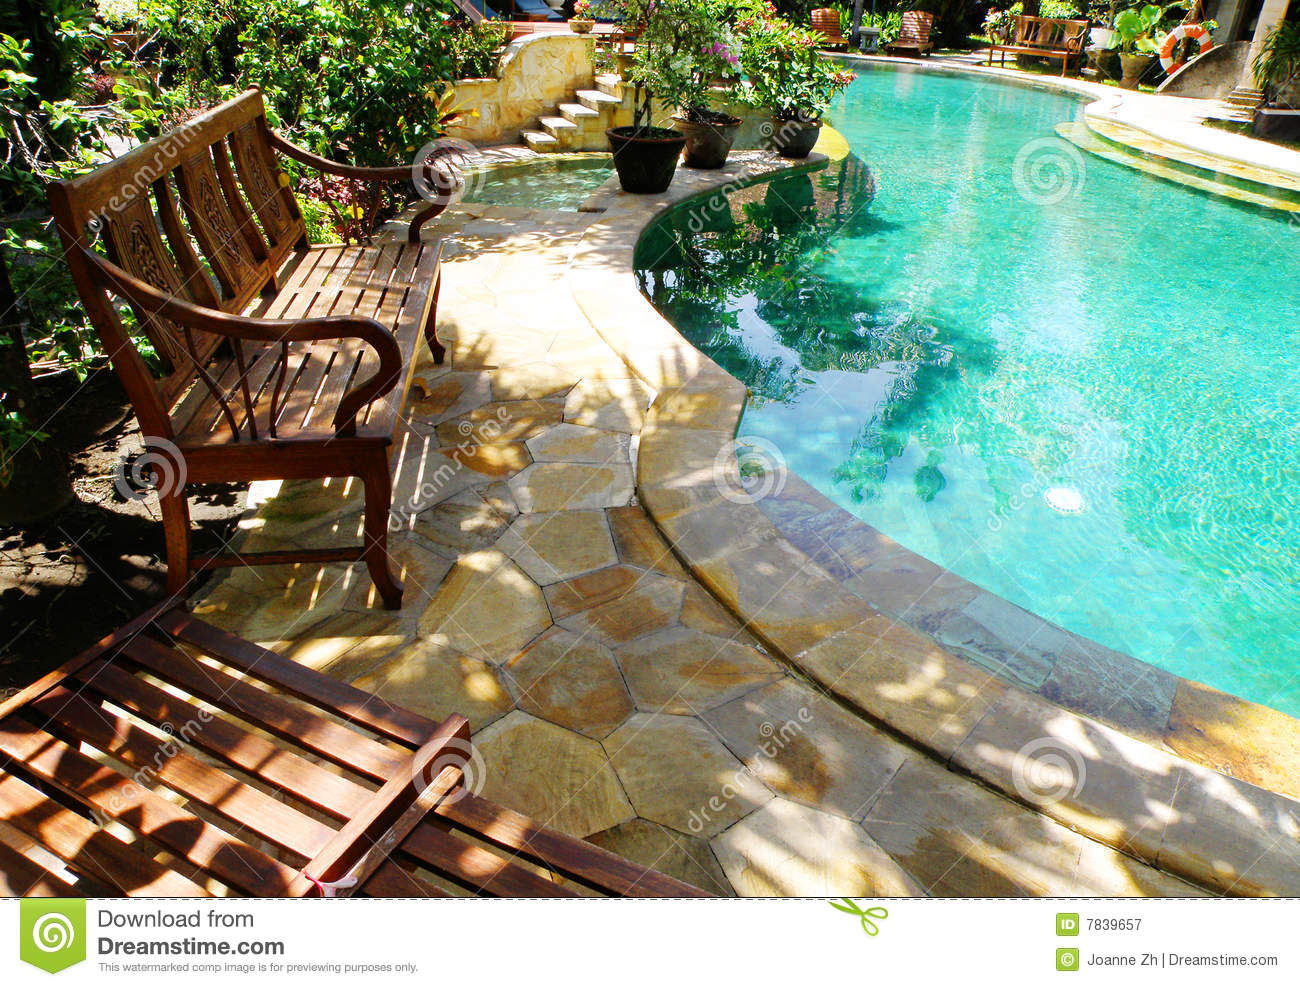 Chairs Furniture Loungers Outdoor Patio Plantings Pool Poolside Relaxing  Sunny Swimming ...